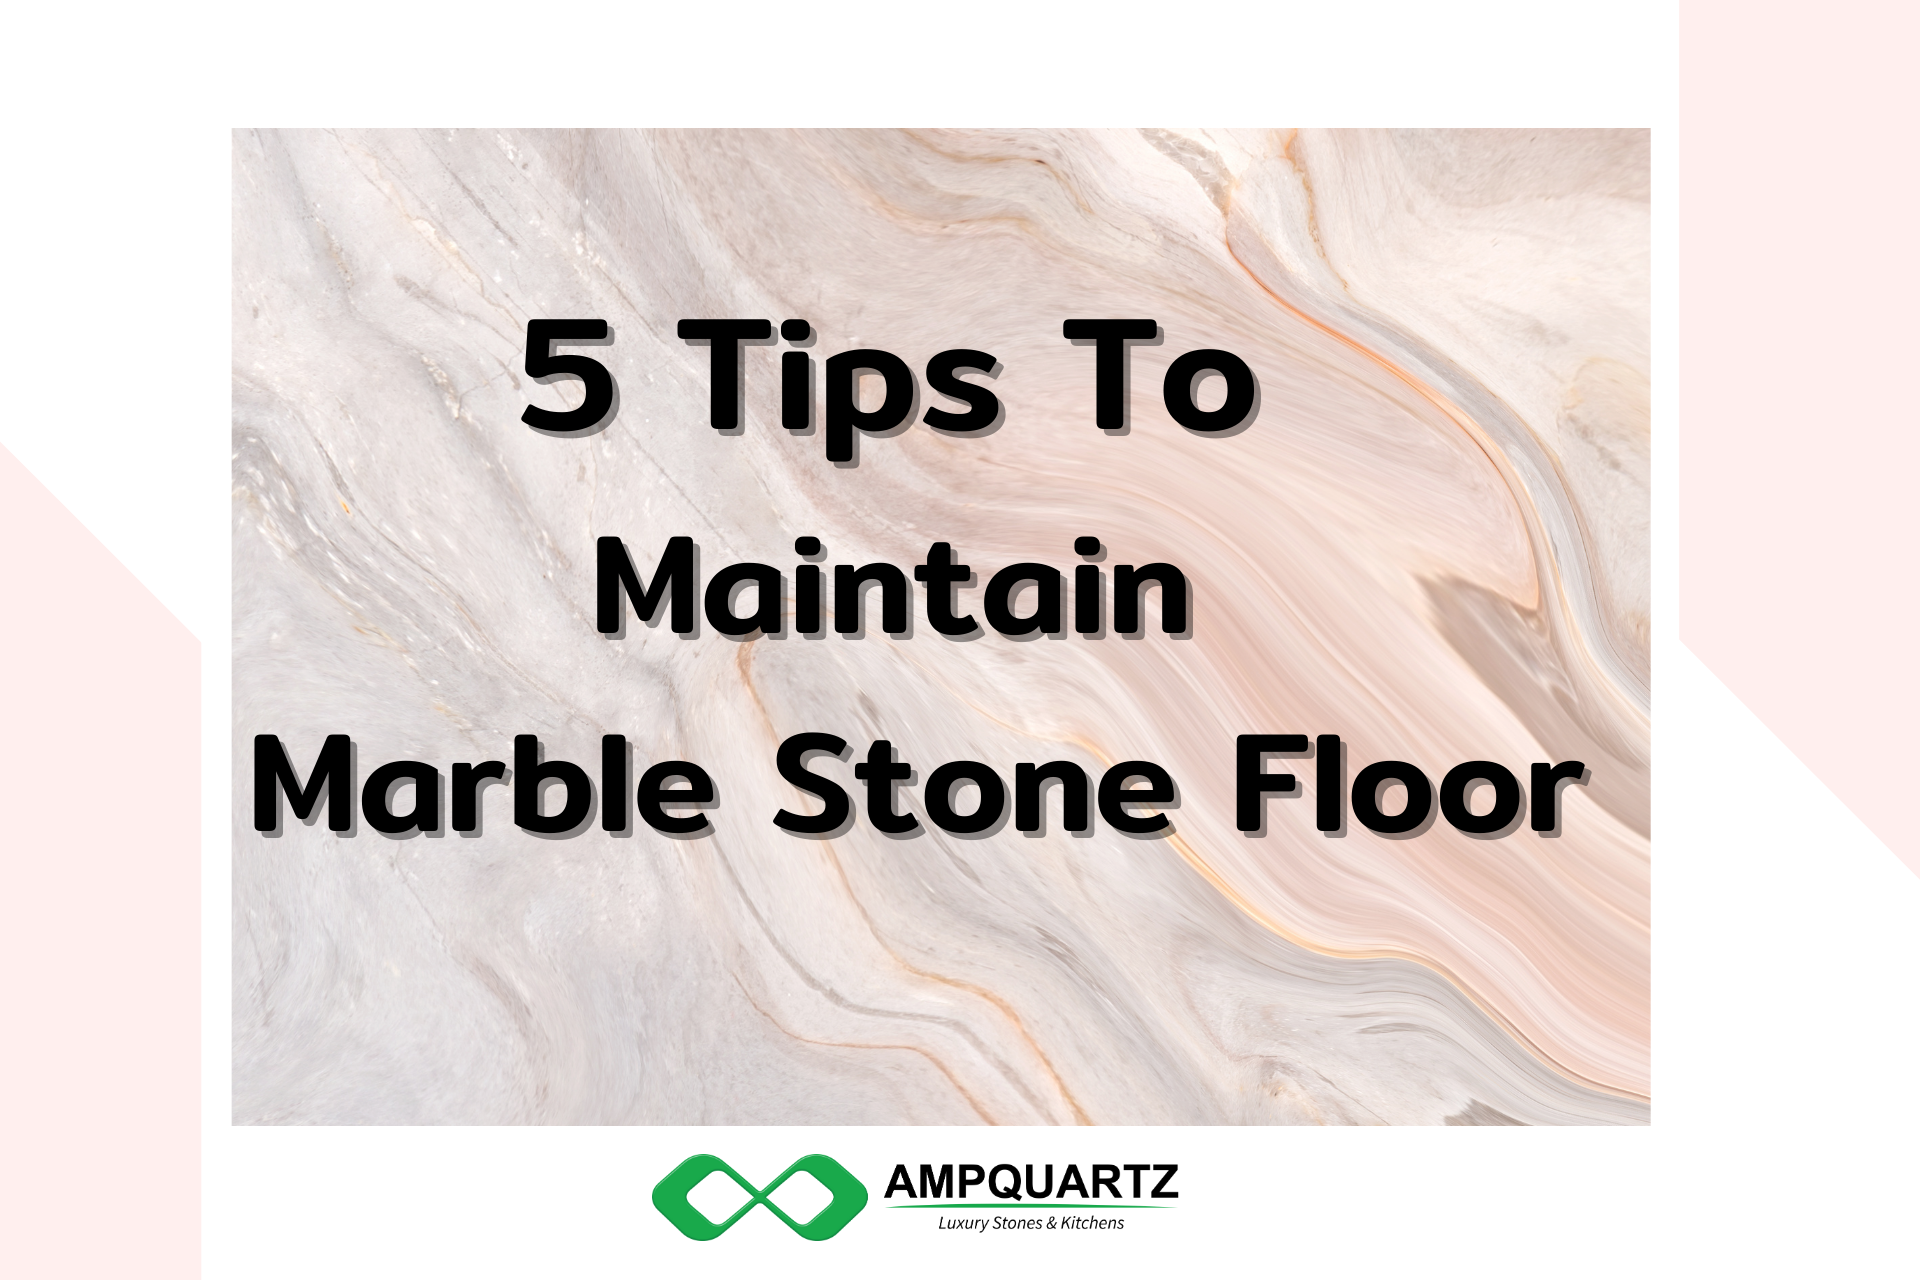 5 Tips To Maintain Marble Stone Floor